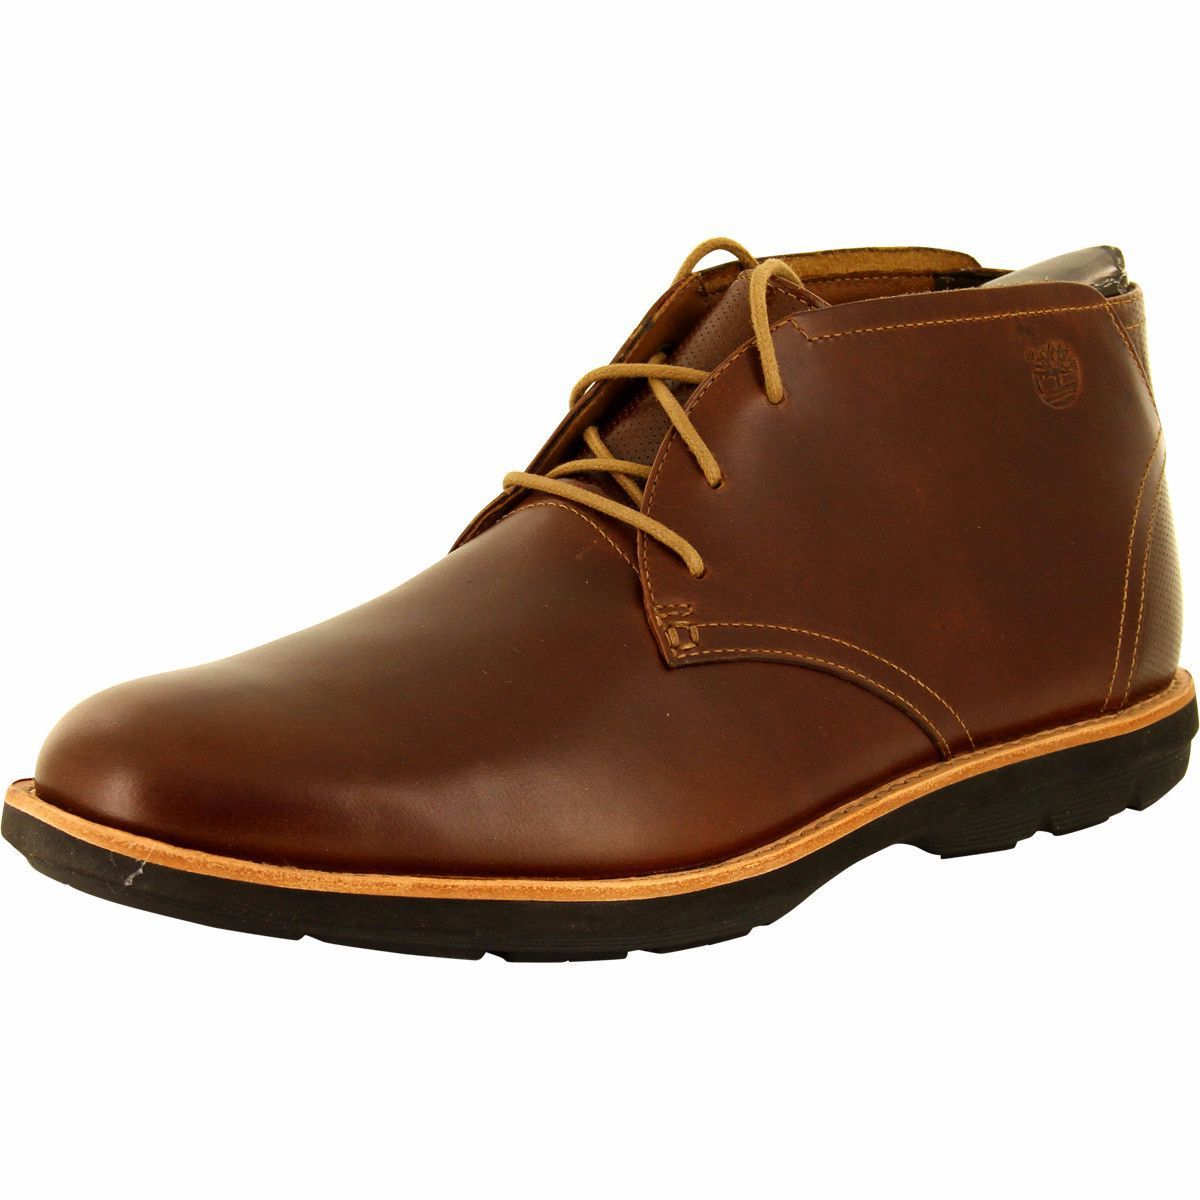 timberland men's earthkeepers tremont chukka boots